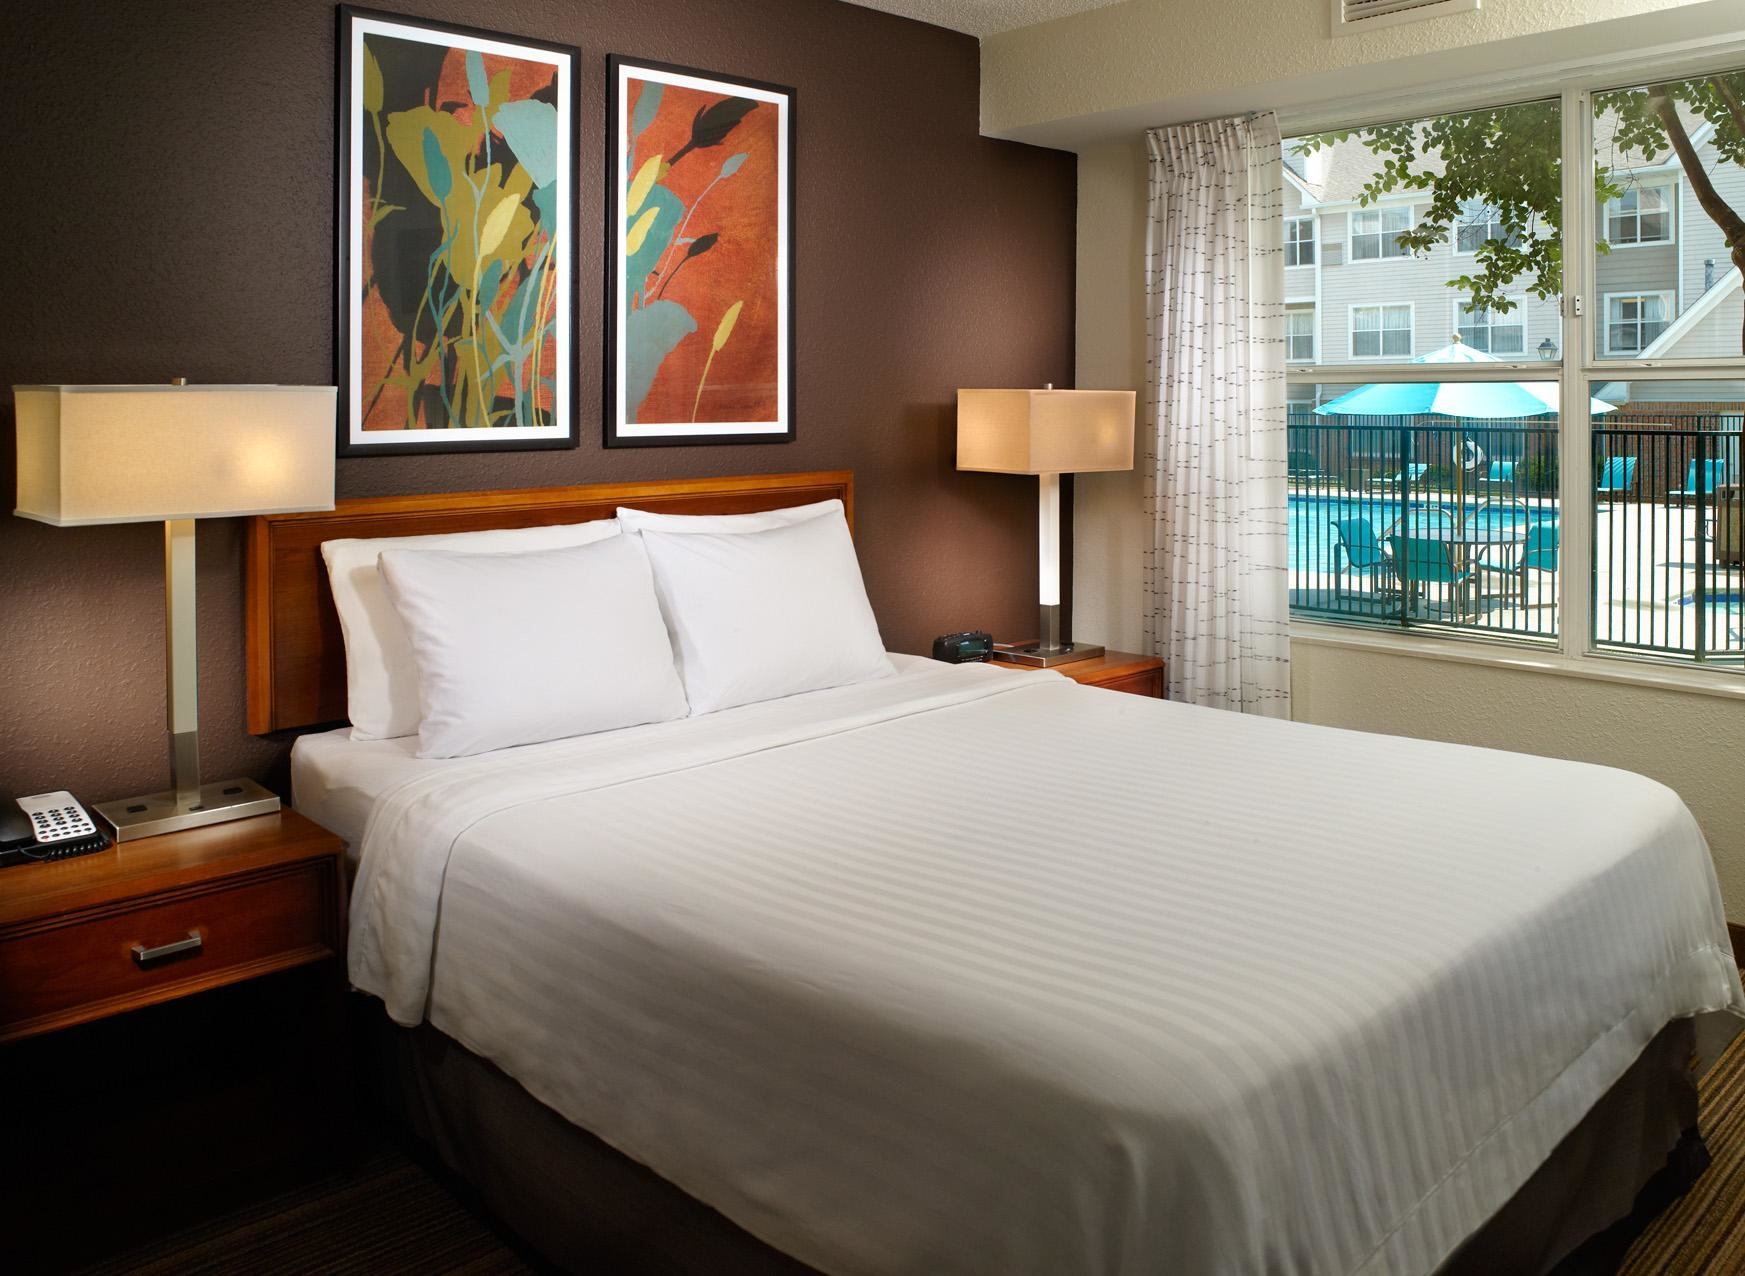 Residence Inn By Marriott Atlanta Alpharetta North Point Mall In Alpharetta Ga 770 587 1